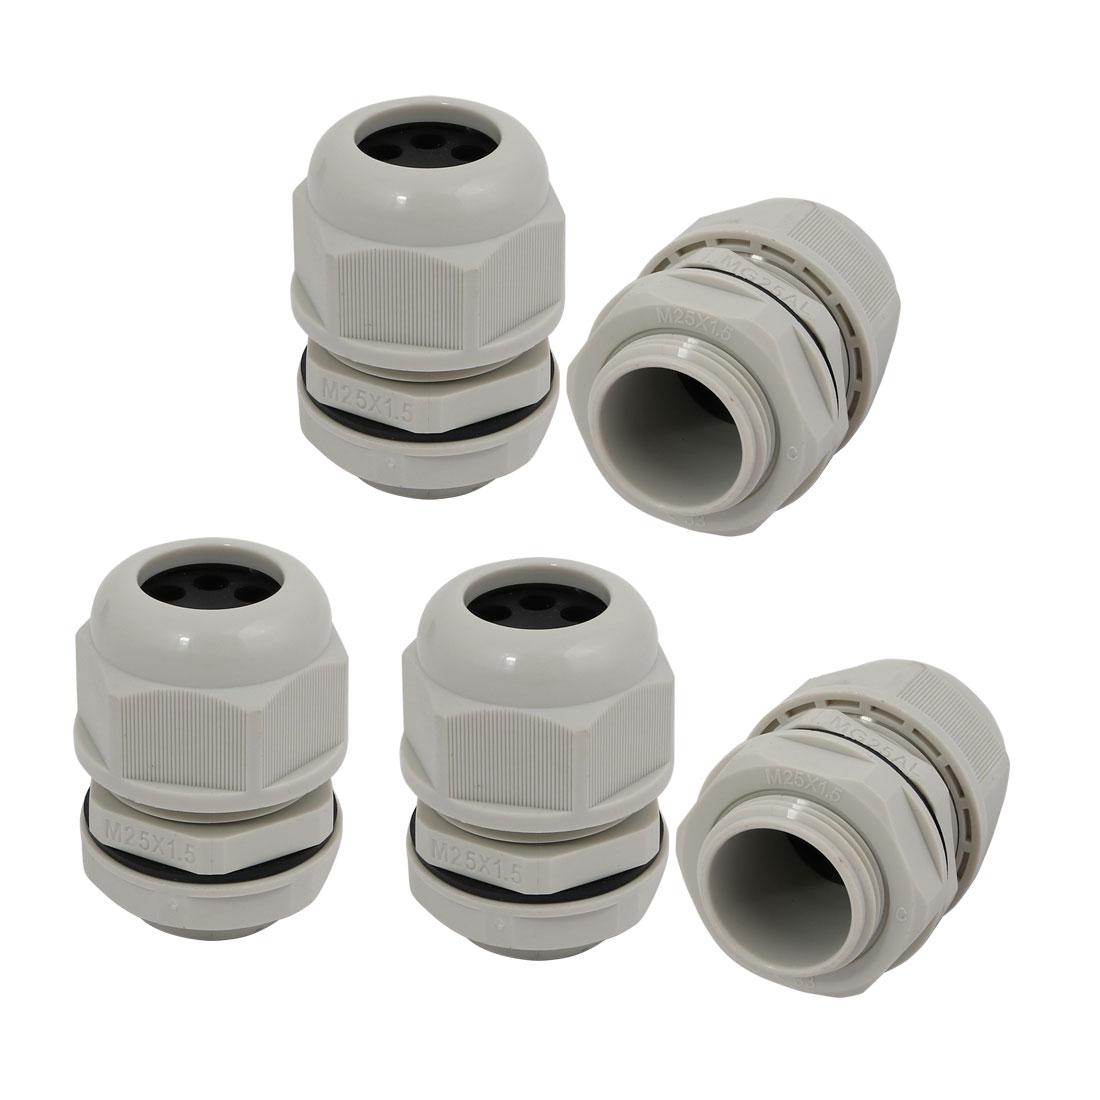 5 Pcs M25 x 1.5mm Nylon 6 Holes Cable Gland Connector Joint Gray MA25-H6-05